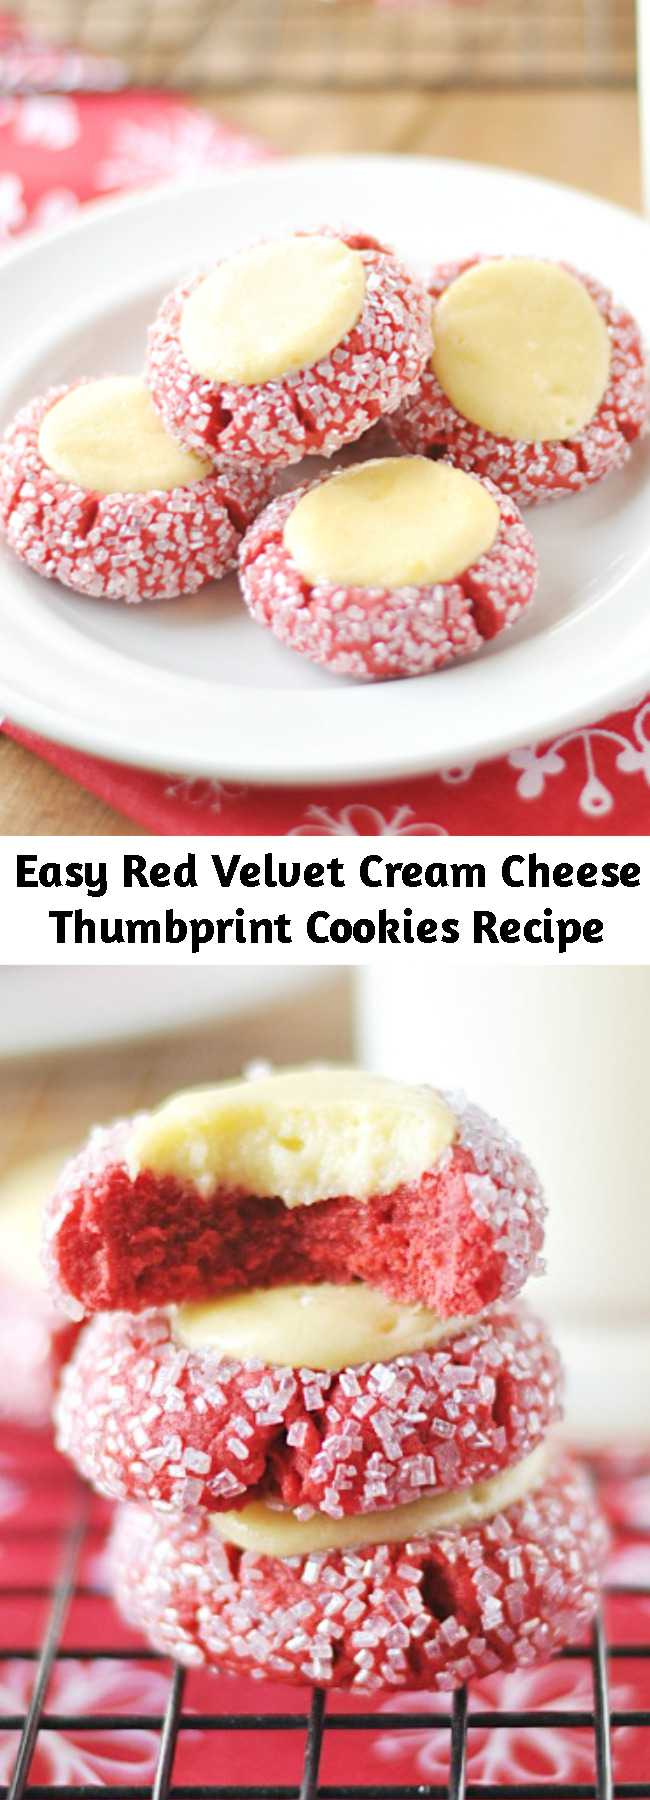 Easy Red Velvet Cream Cheese Thumbprint Cookies Recipe - These Red Velvet Thumbprints are a cookie and cheesecake in one! Perfect for Christmas cookie plates and dangerously delicious.